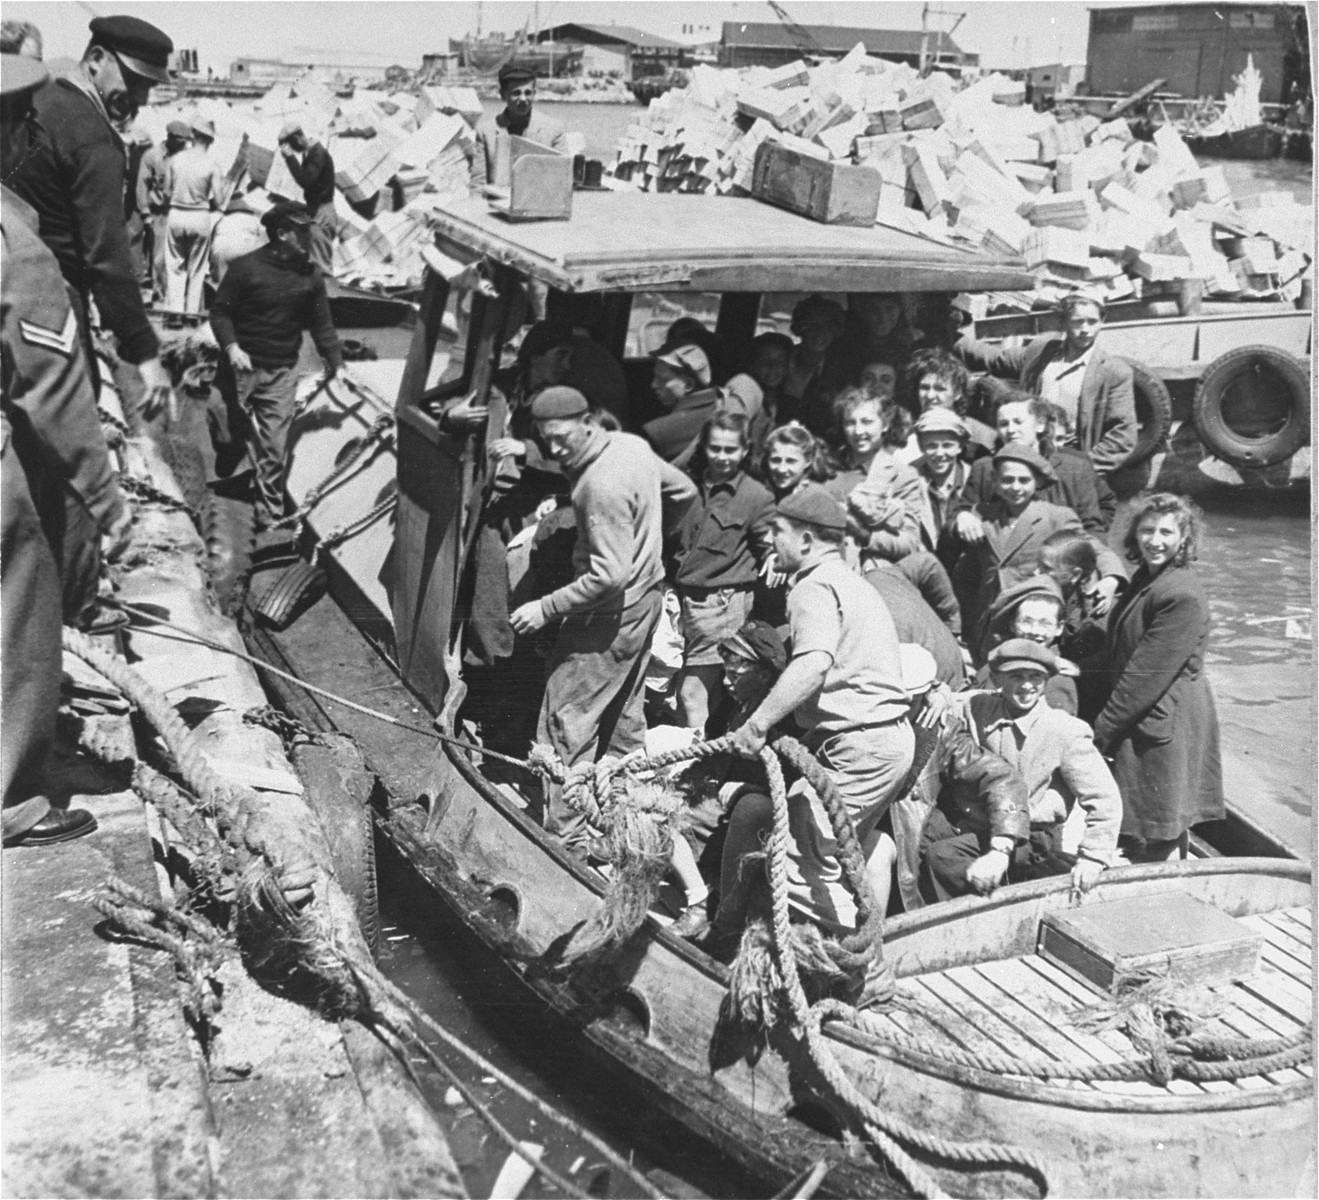 A group of children survivors from the Bergen-Belsen displaced persons' camp are brought to shore in Tel Aviv, after having been detained in refugee camps in Cyprus.